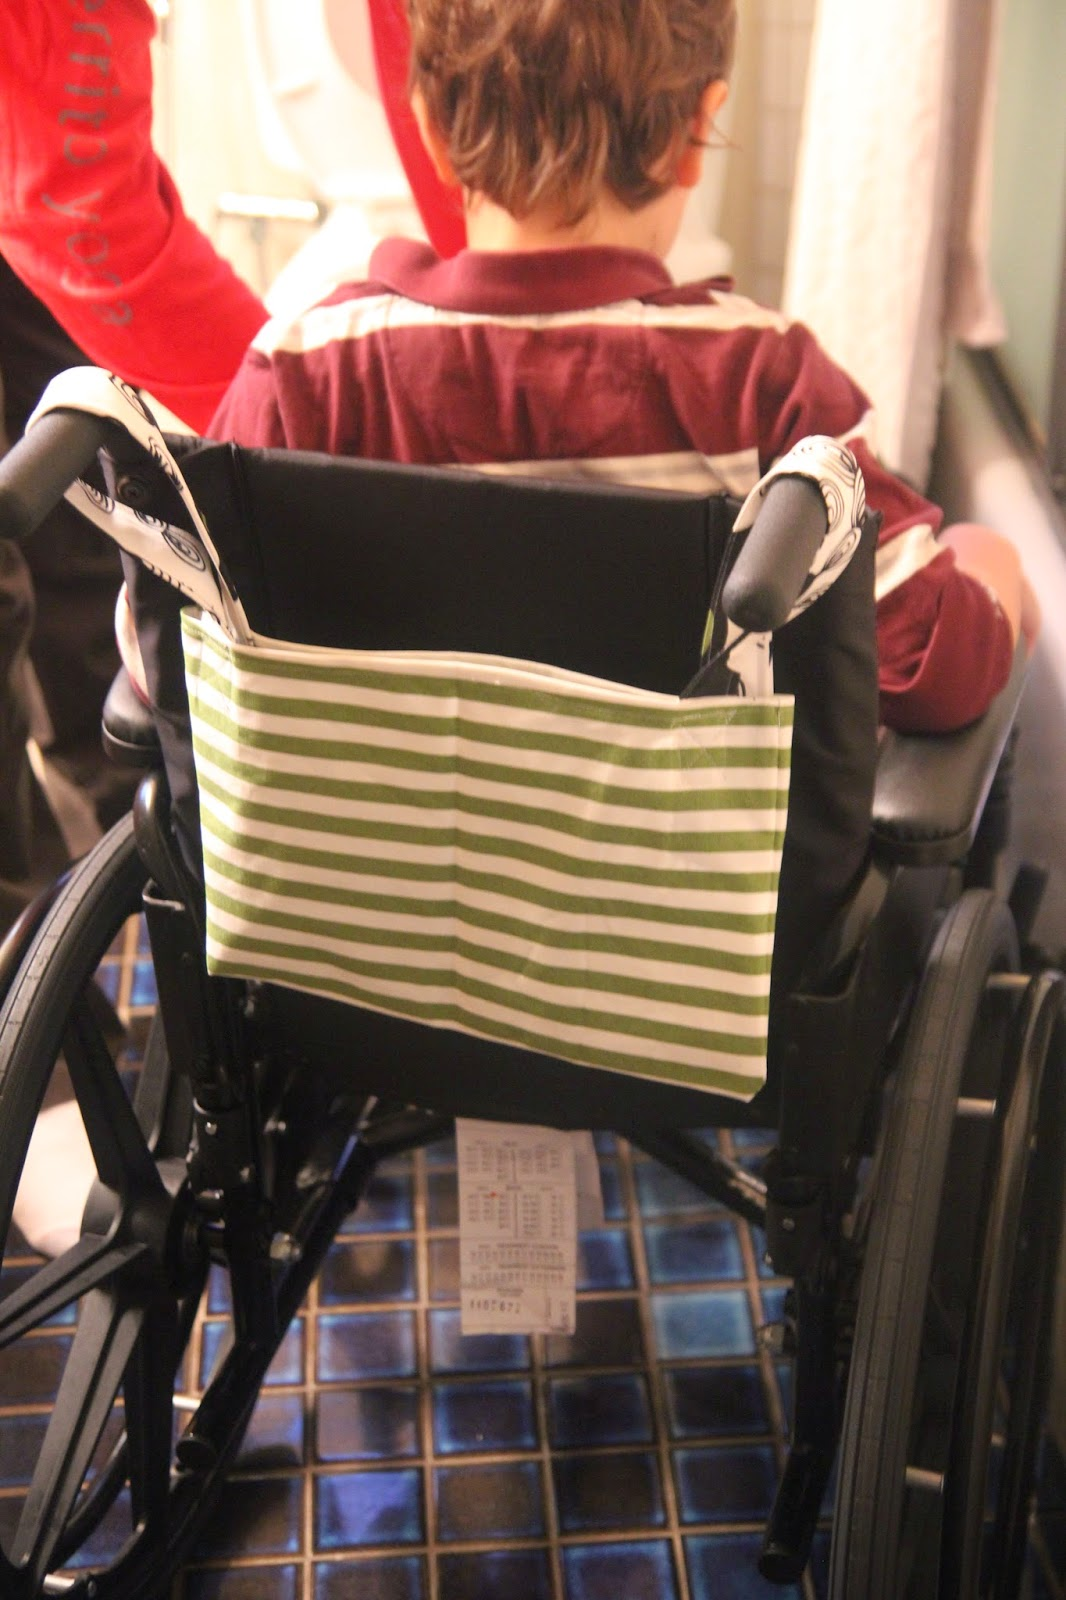 We Pretty Much Immediately Set To Work Making A Wheelchair Bag For The  Handles. My Son Chose Some Heavy Canvas Weight Ikea Fabric I Had (stripes  And A ...